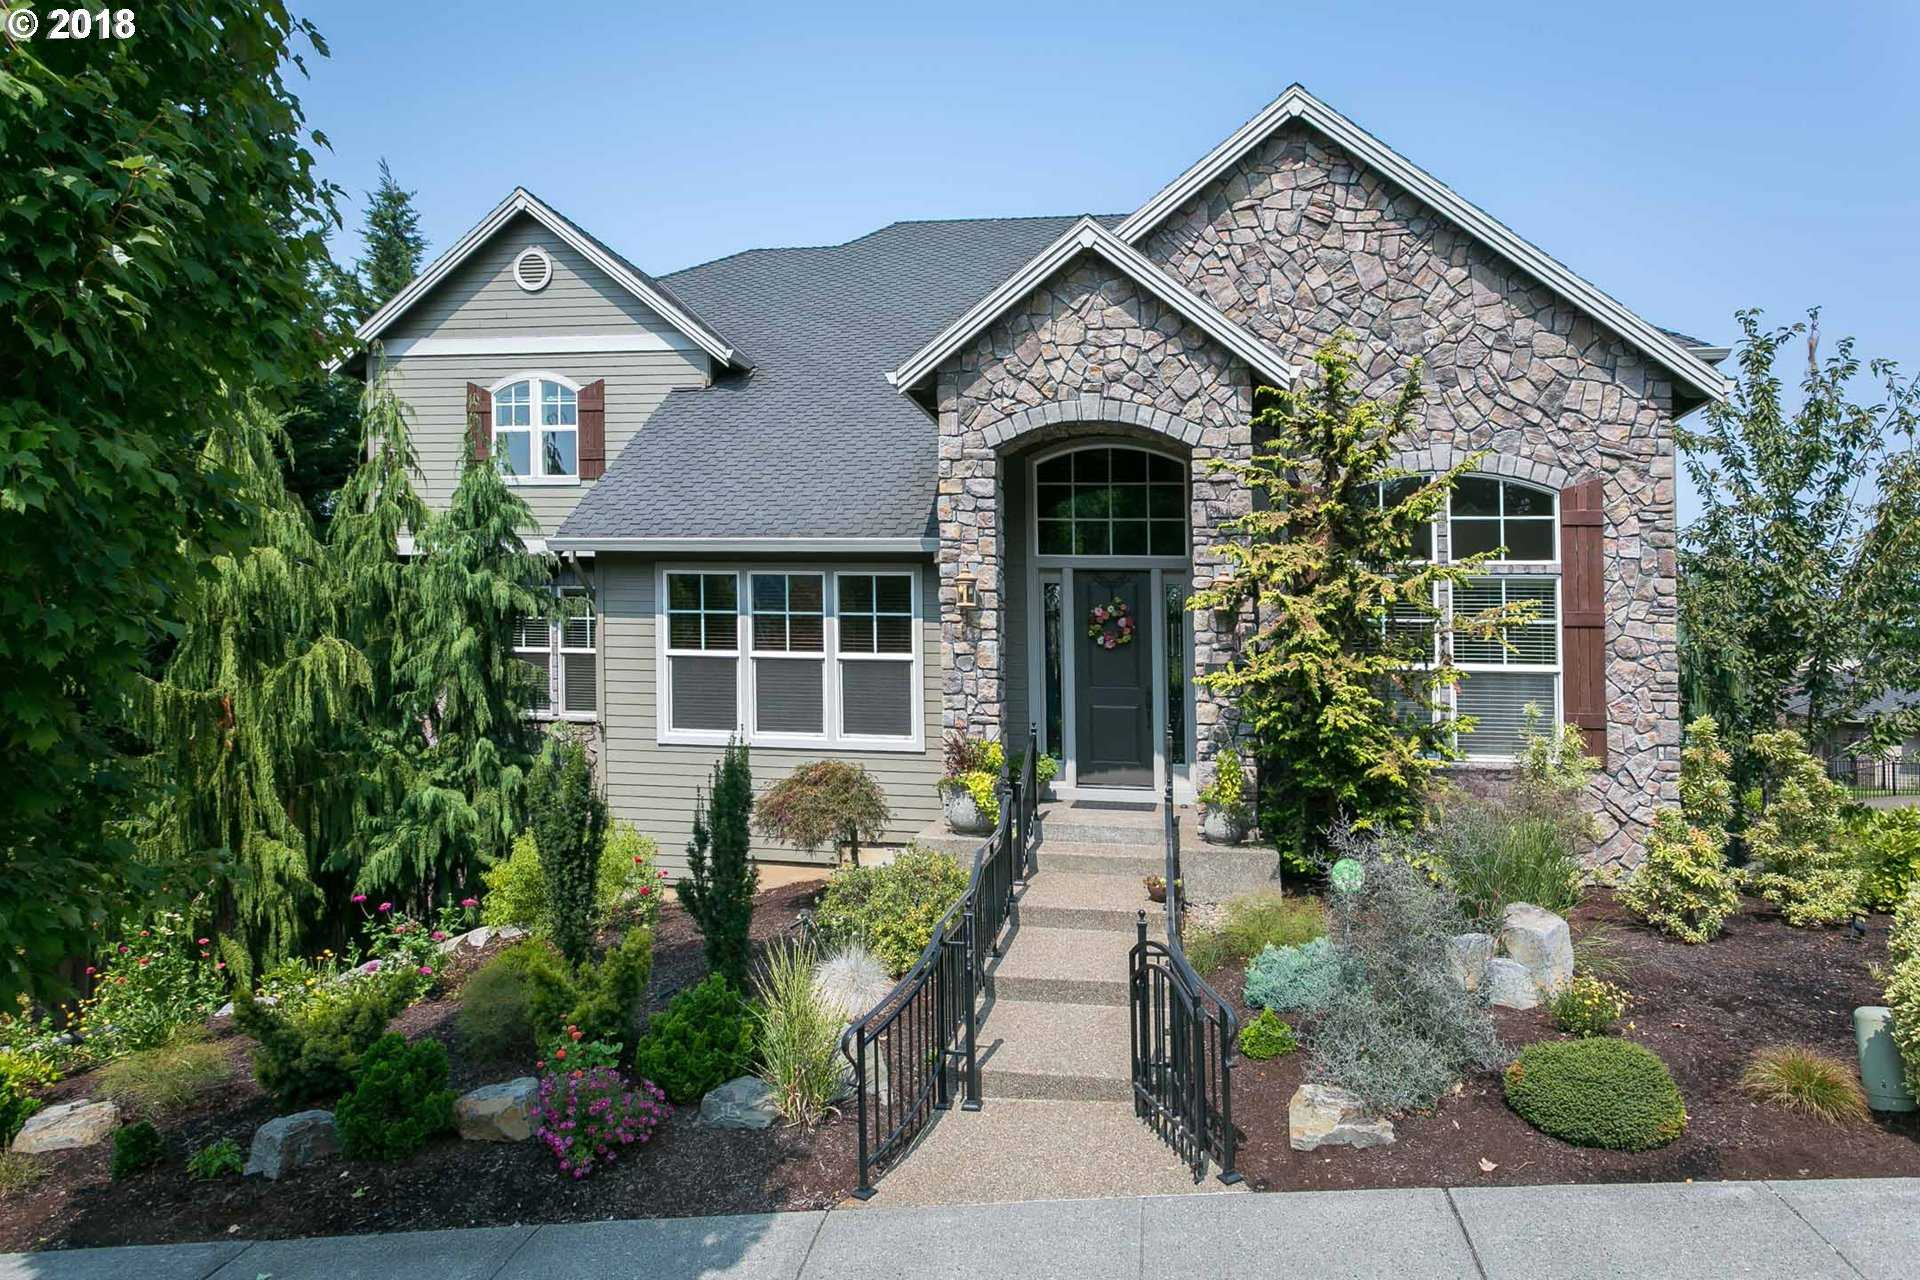 $799,900 - 5Br/5Ba -  for Sale in Victoria Meadows, Tualatin